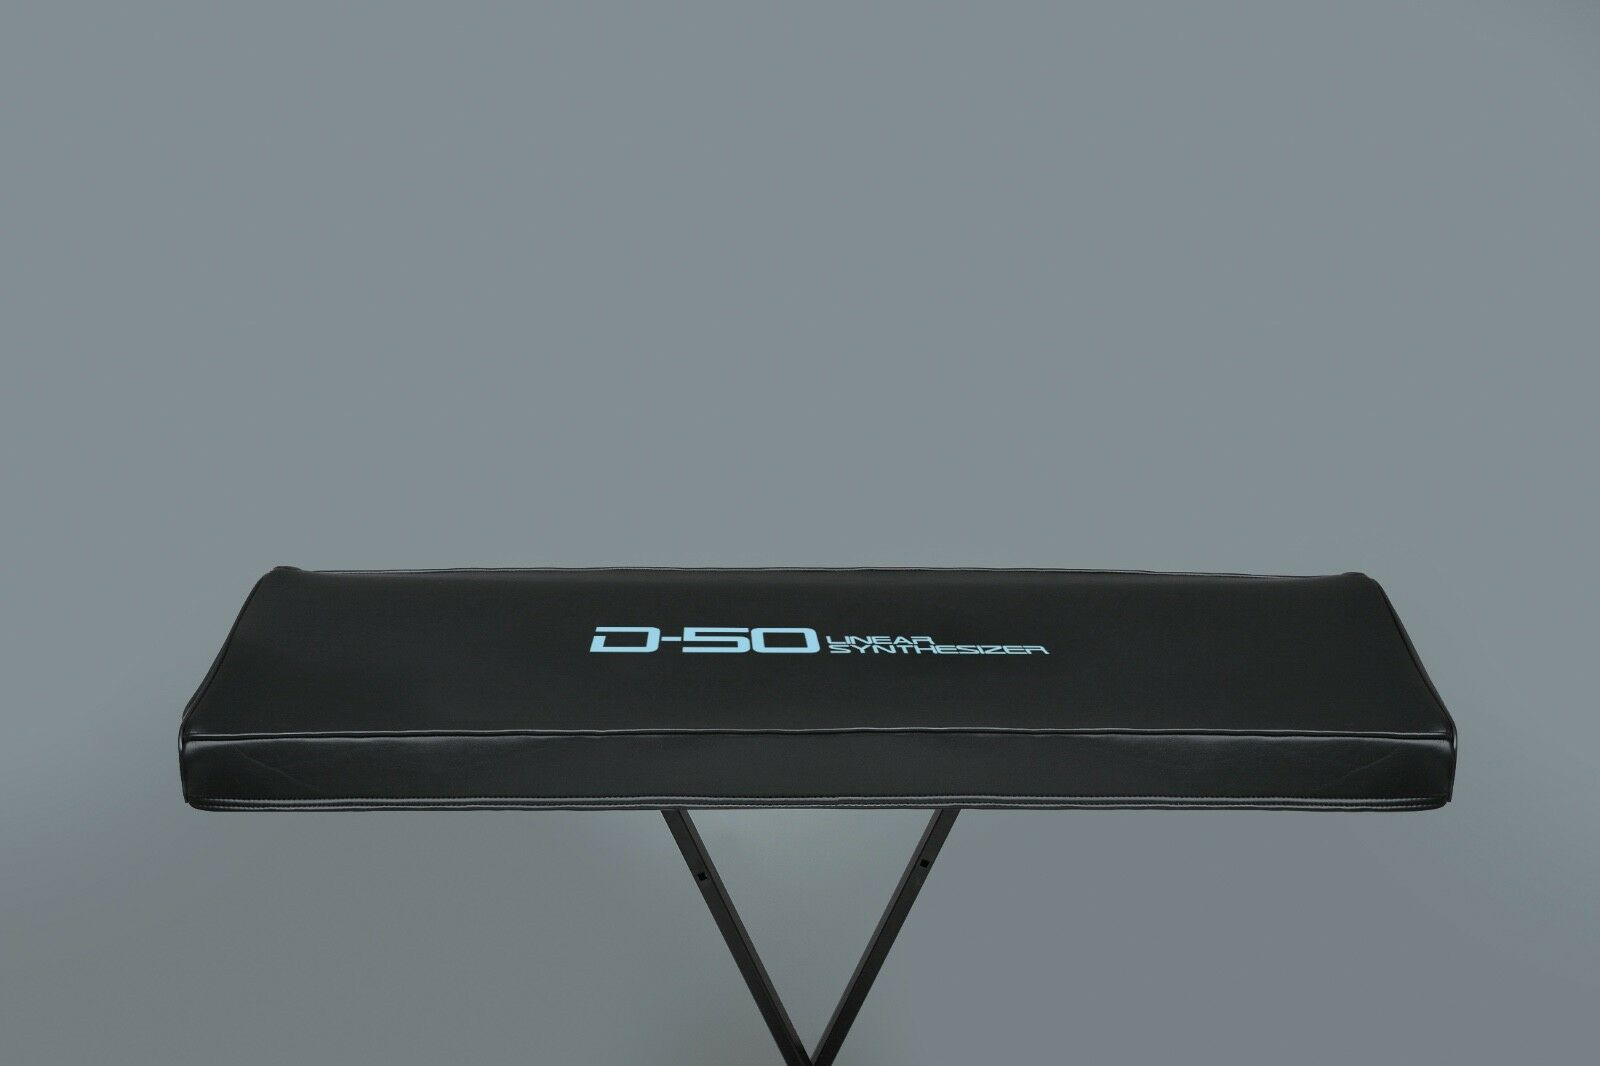 Roland D-50 synth dust cover